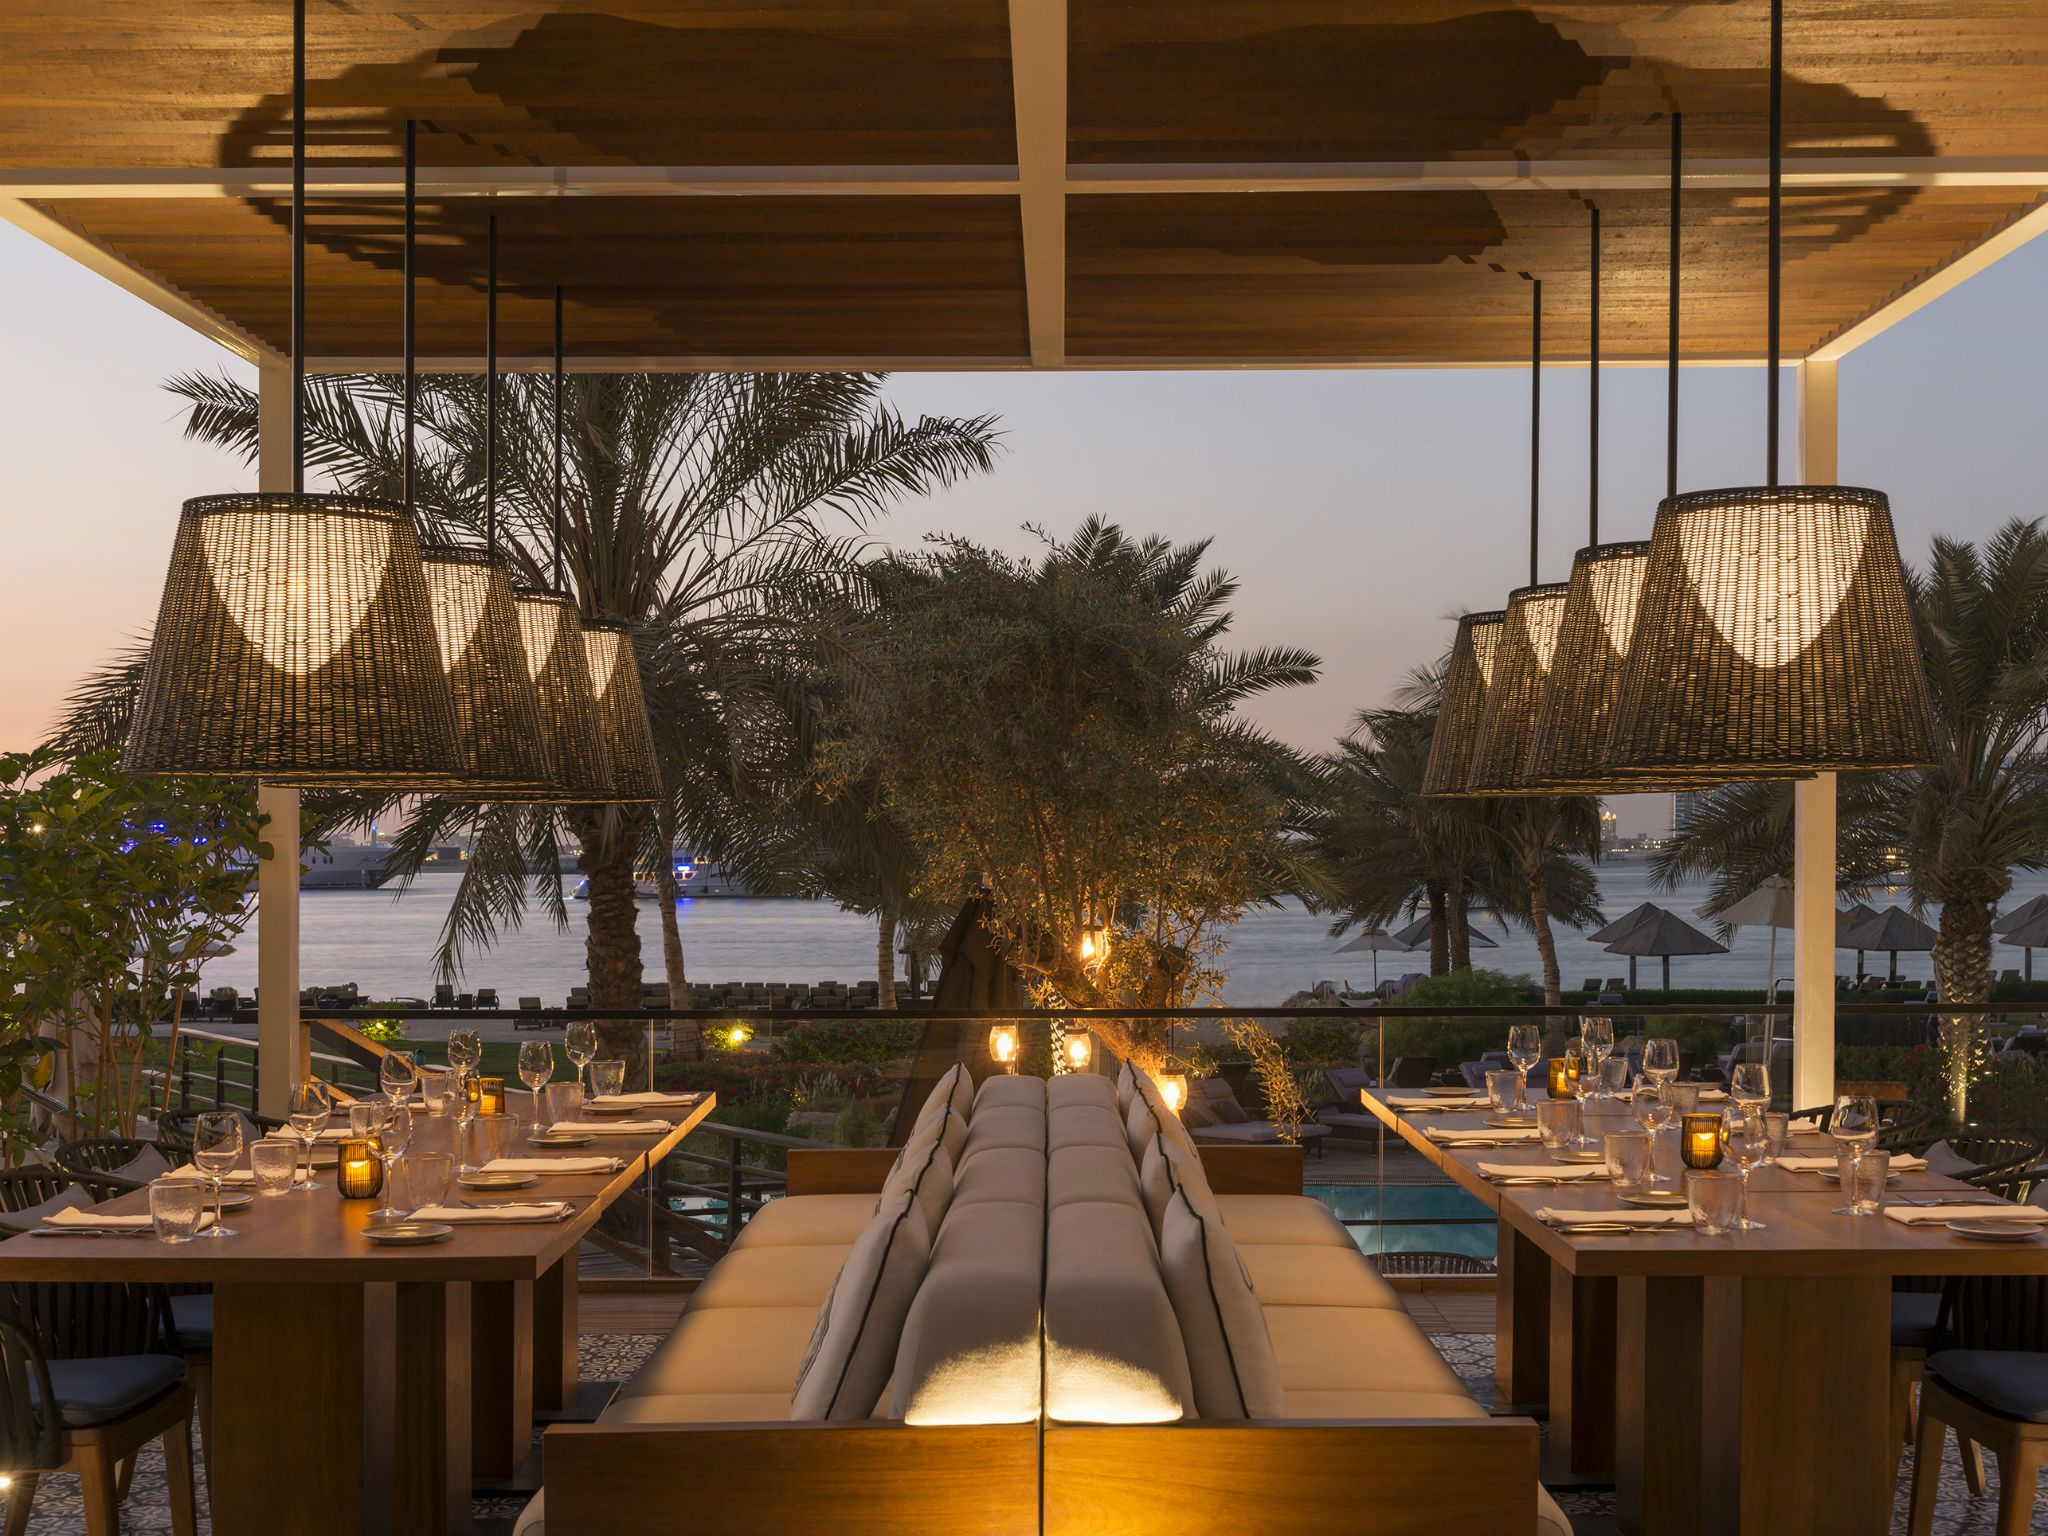 Restaurants bars the westin dubai mina seyahi mina for Terrace bar grill